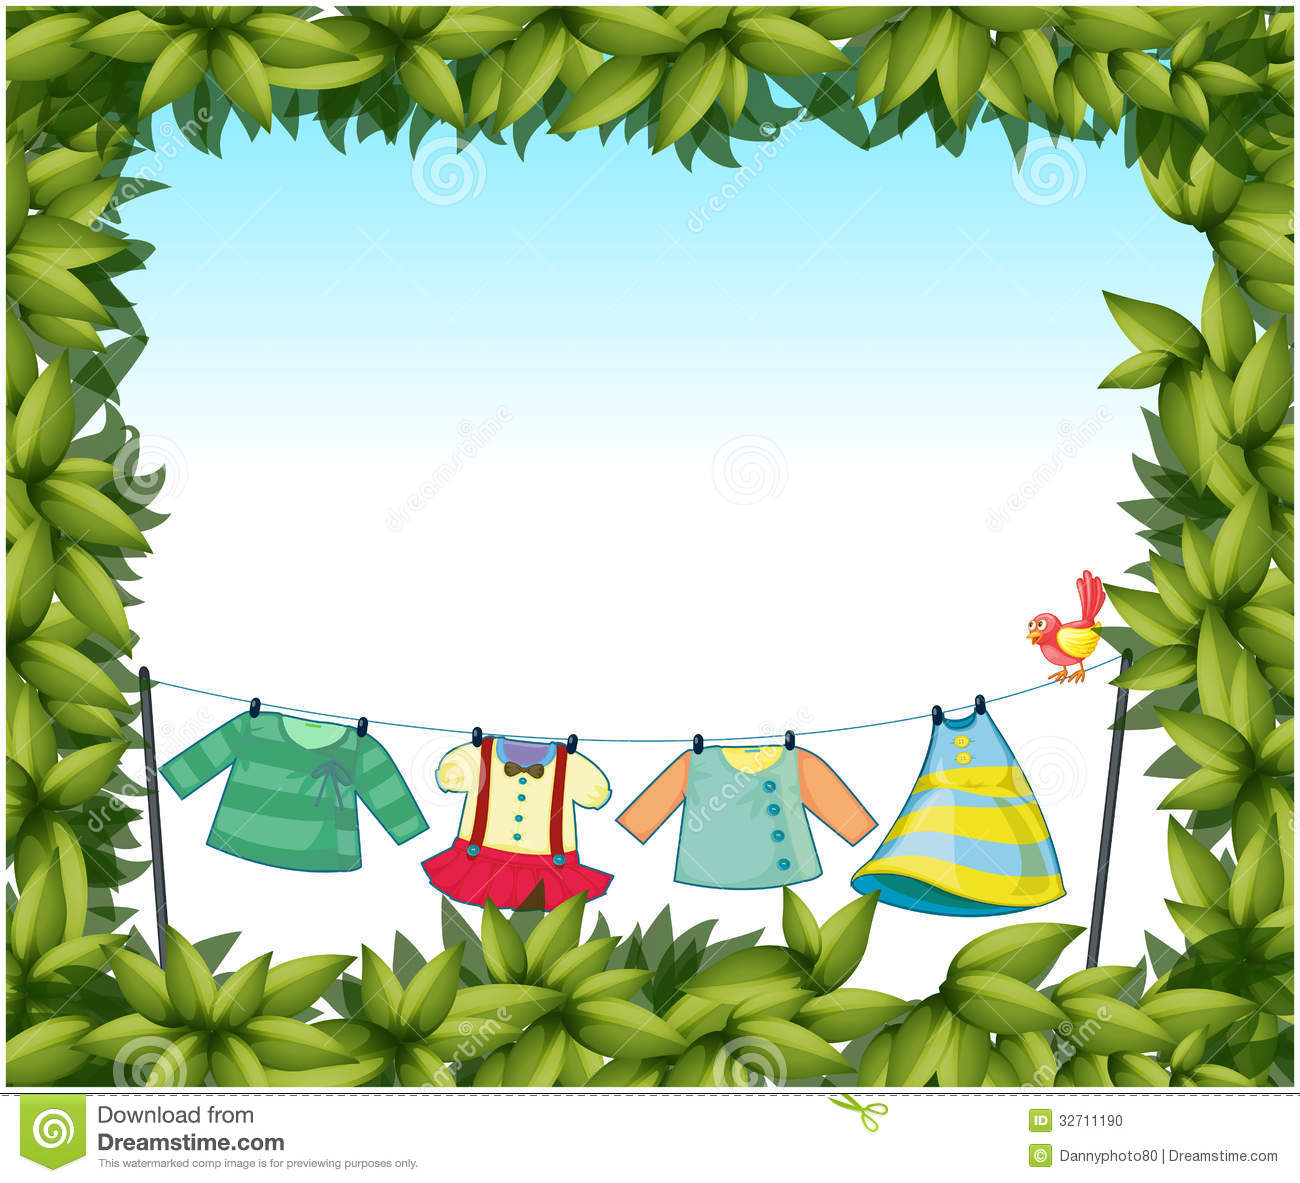 Frame Border With Hanging Clothes And A Bird Stock Photo - Image ...